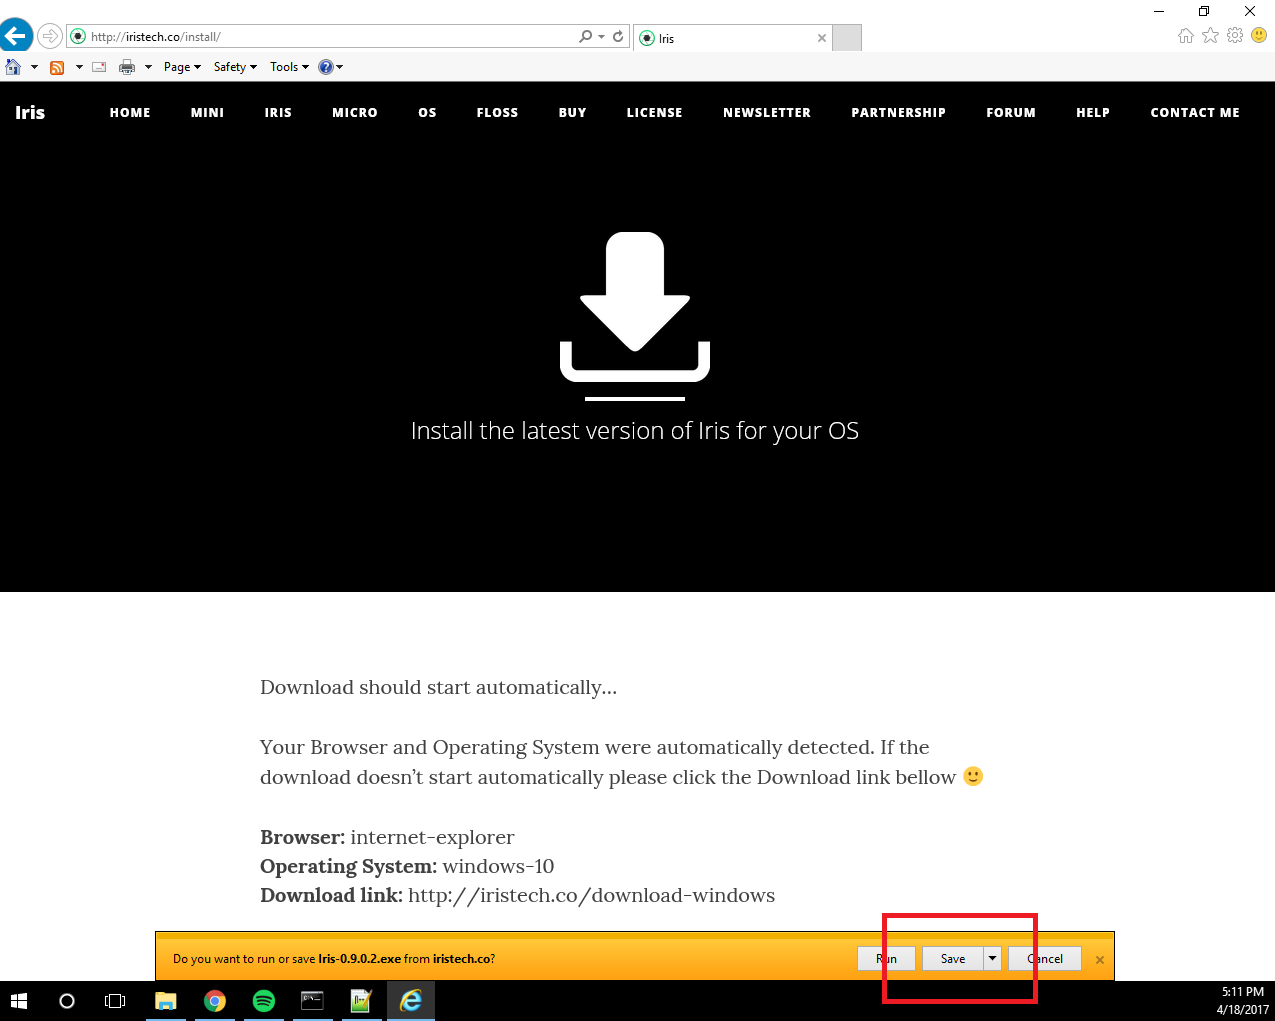 How to Download Iris with Internet Explorer on Windows 10